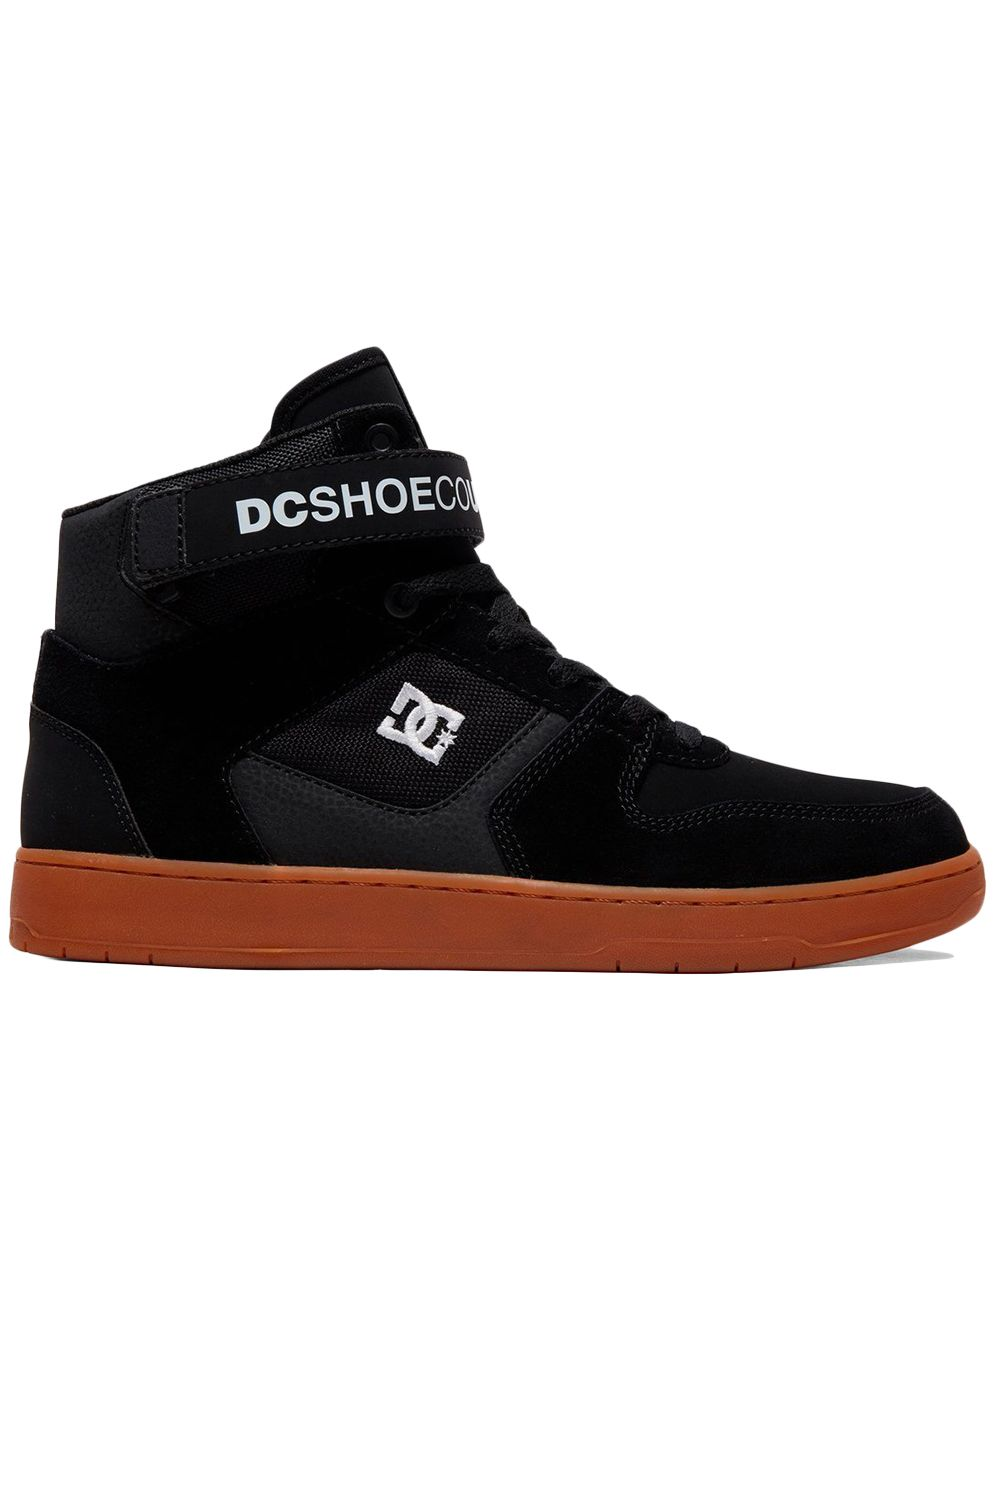 Tenis DC Shoes PENSFORD Black/Gum